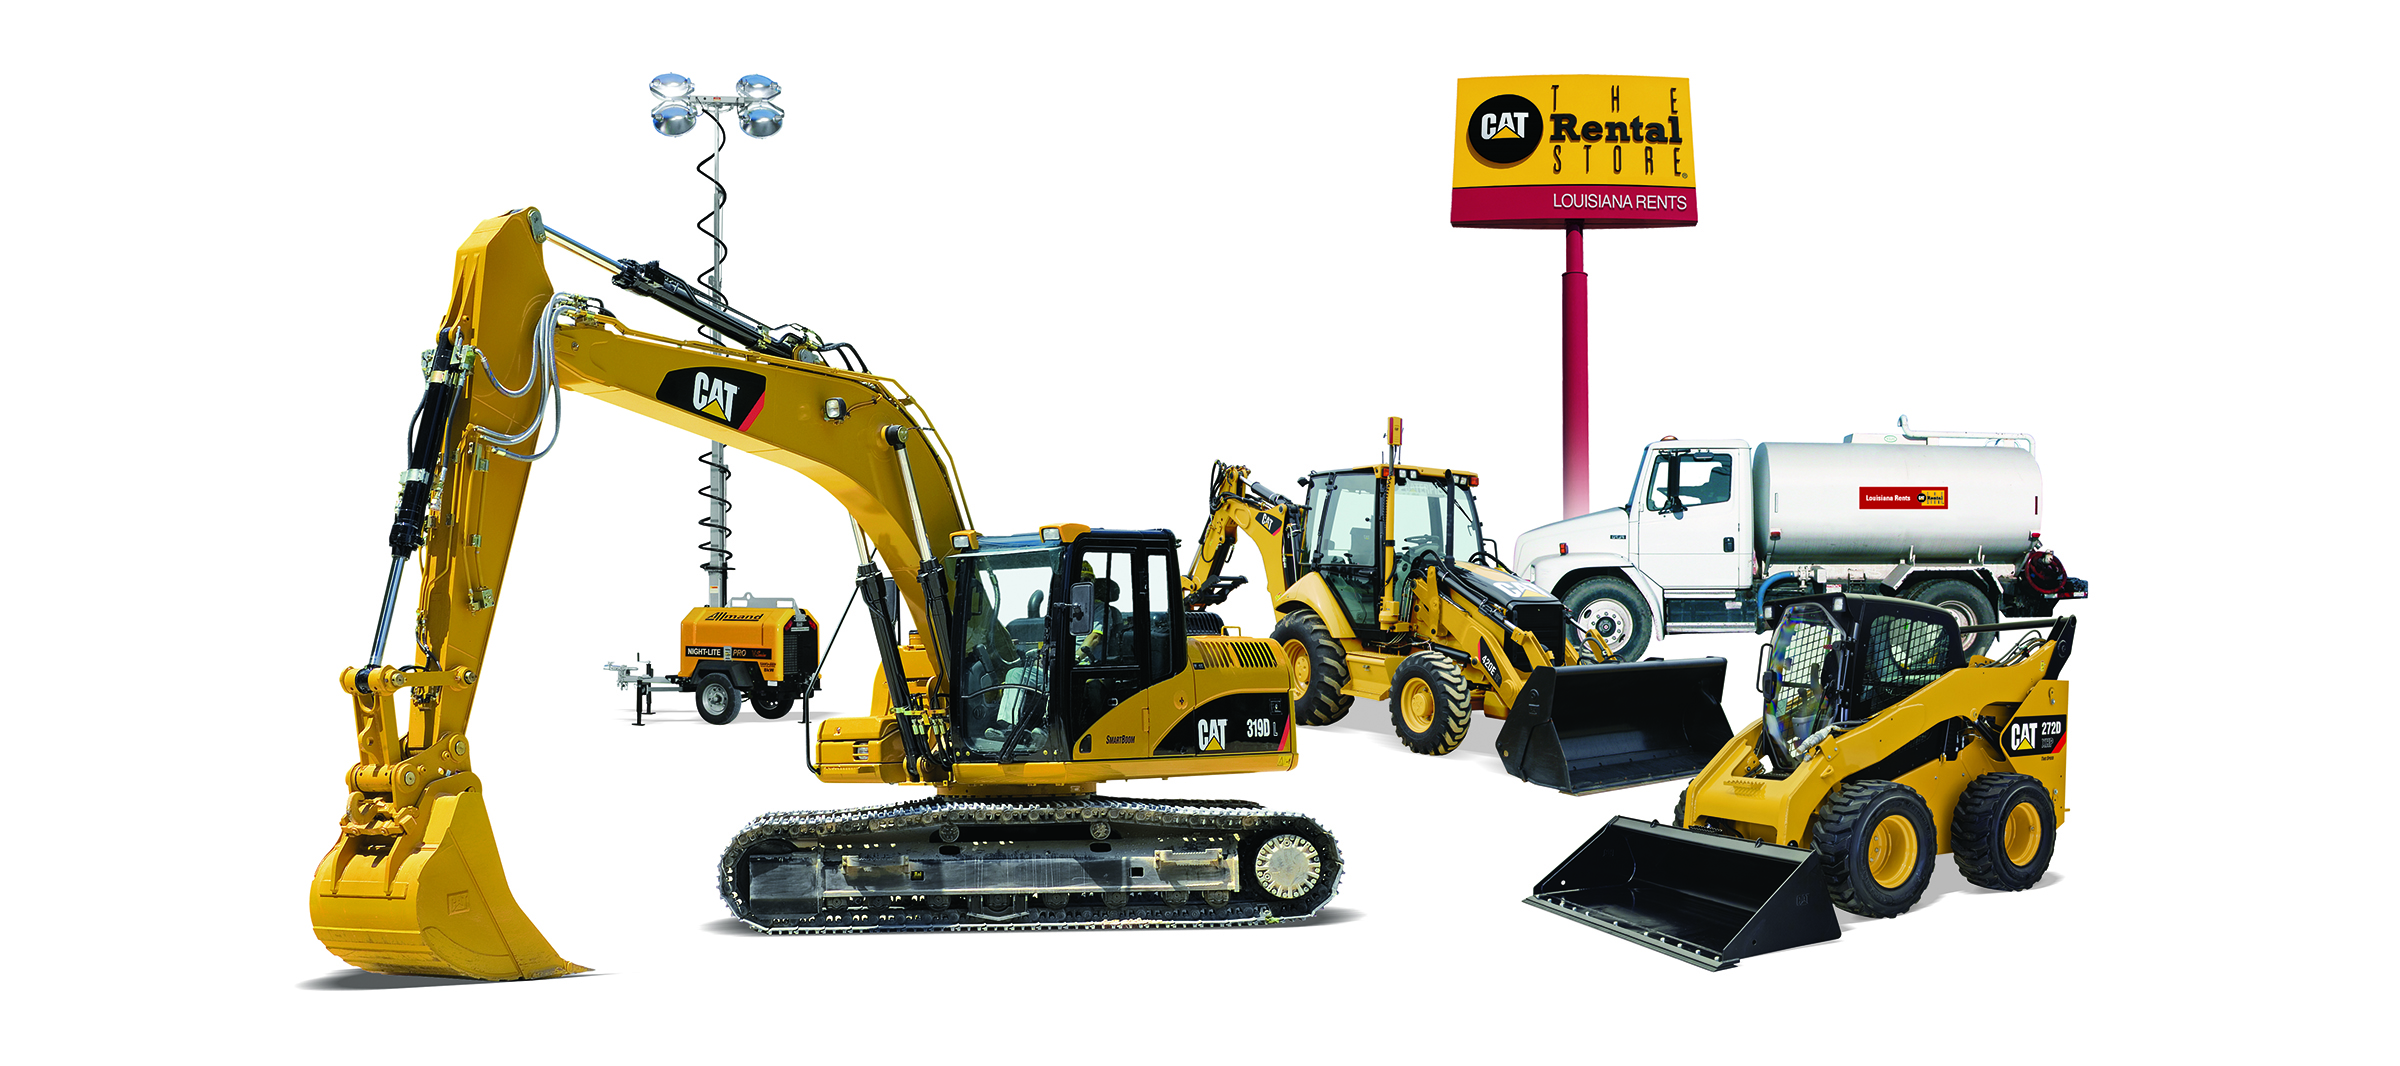 reliable equipment for rent